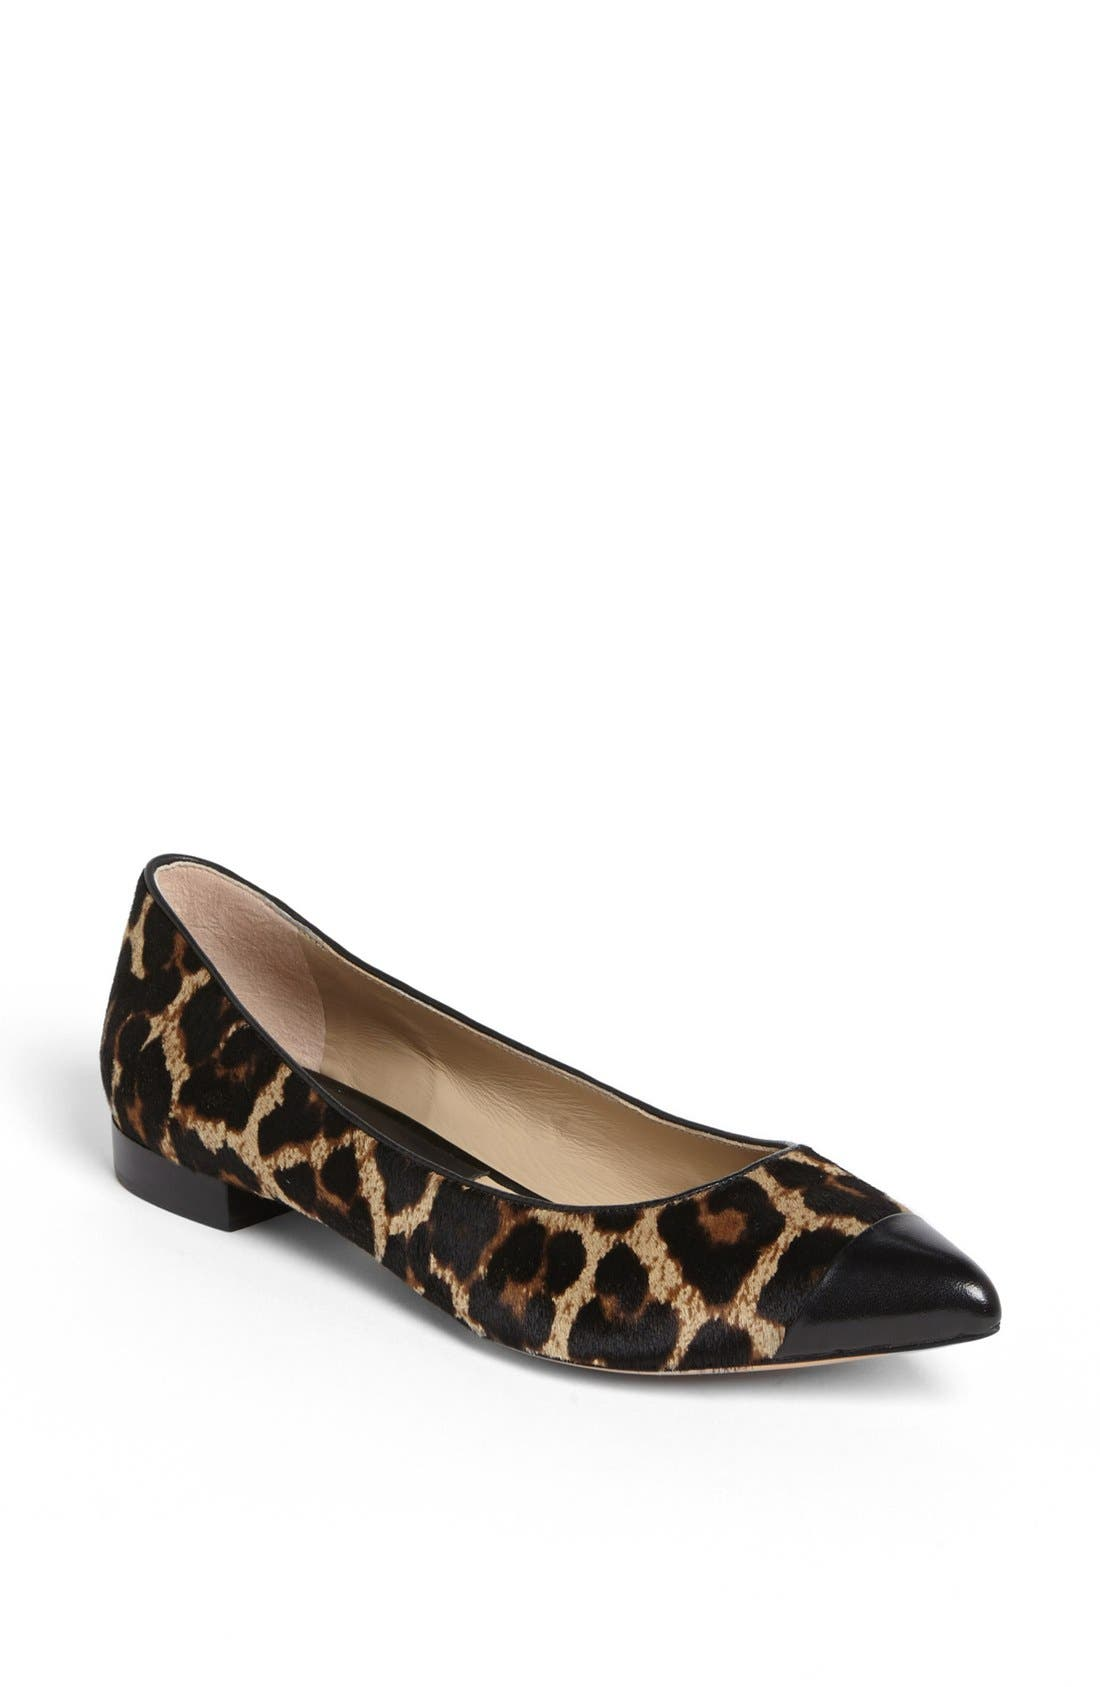 Alternate Image 1 Selected - Michael Kors 'Janae' Calf Hair Flat